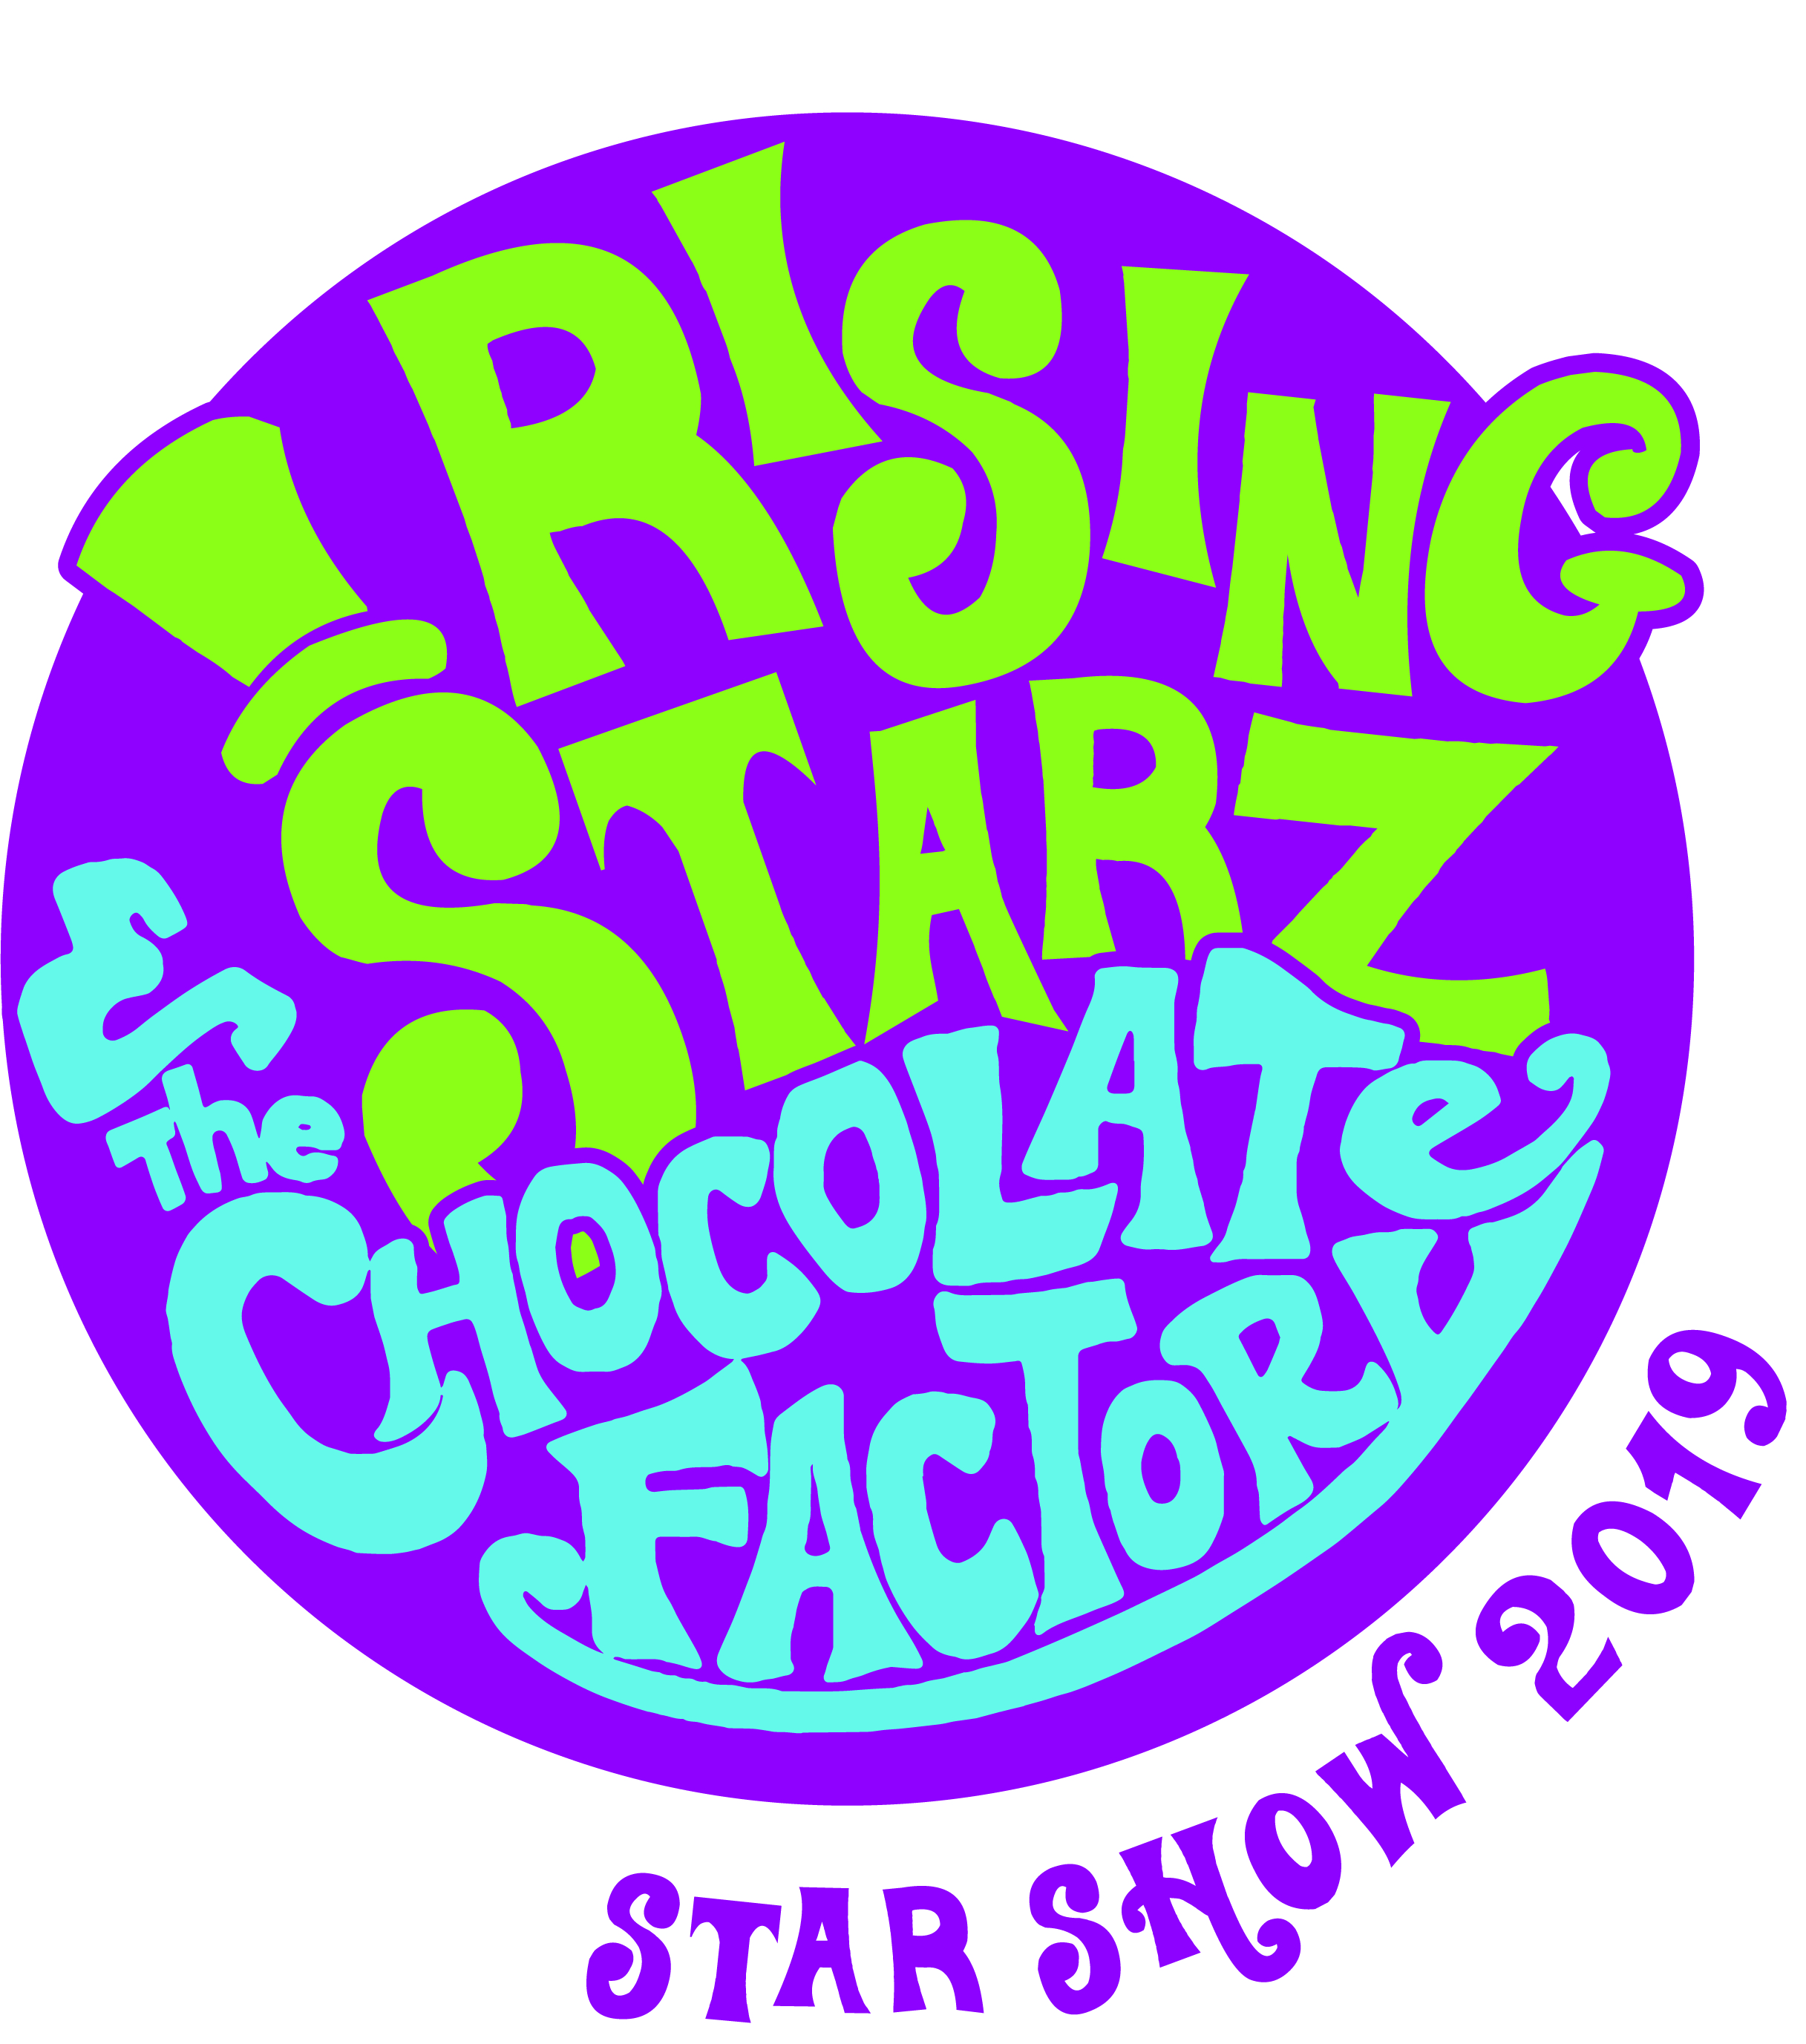 CHOCOLATE FACTORY STAR SHOW-01